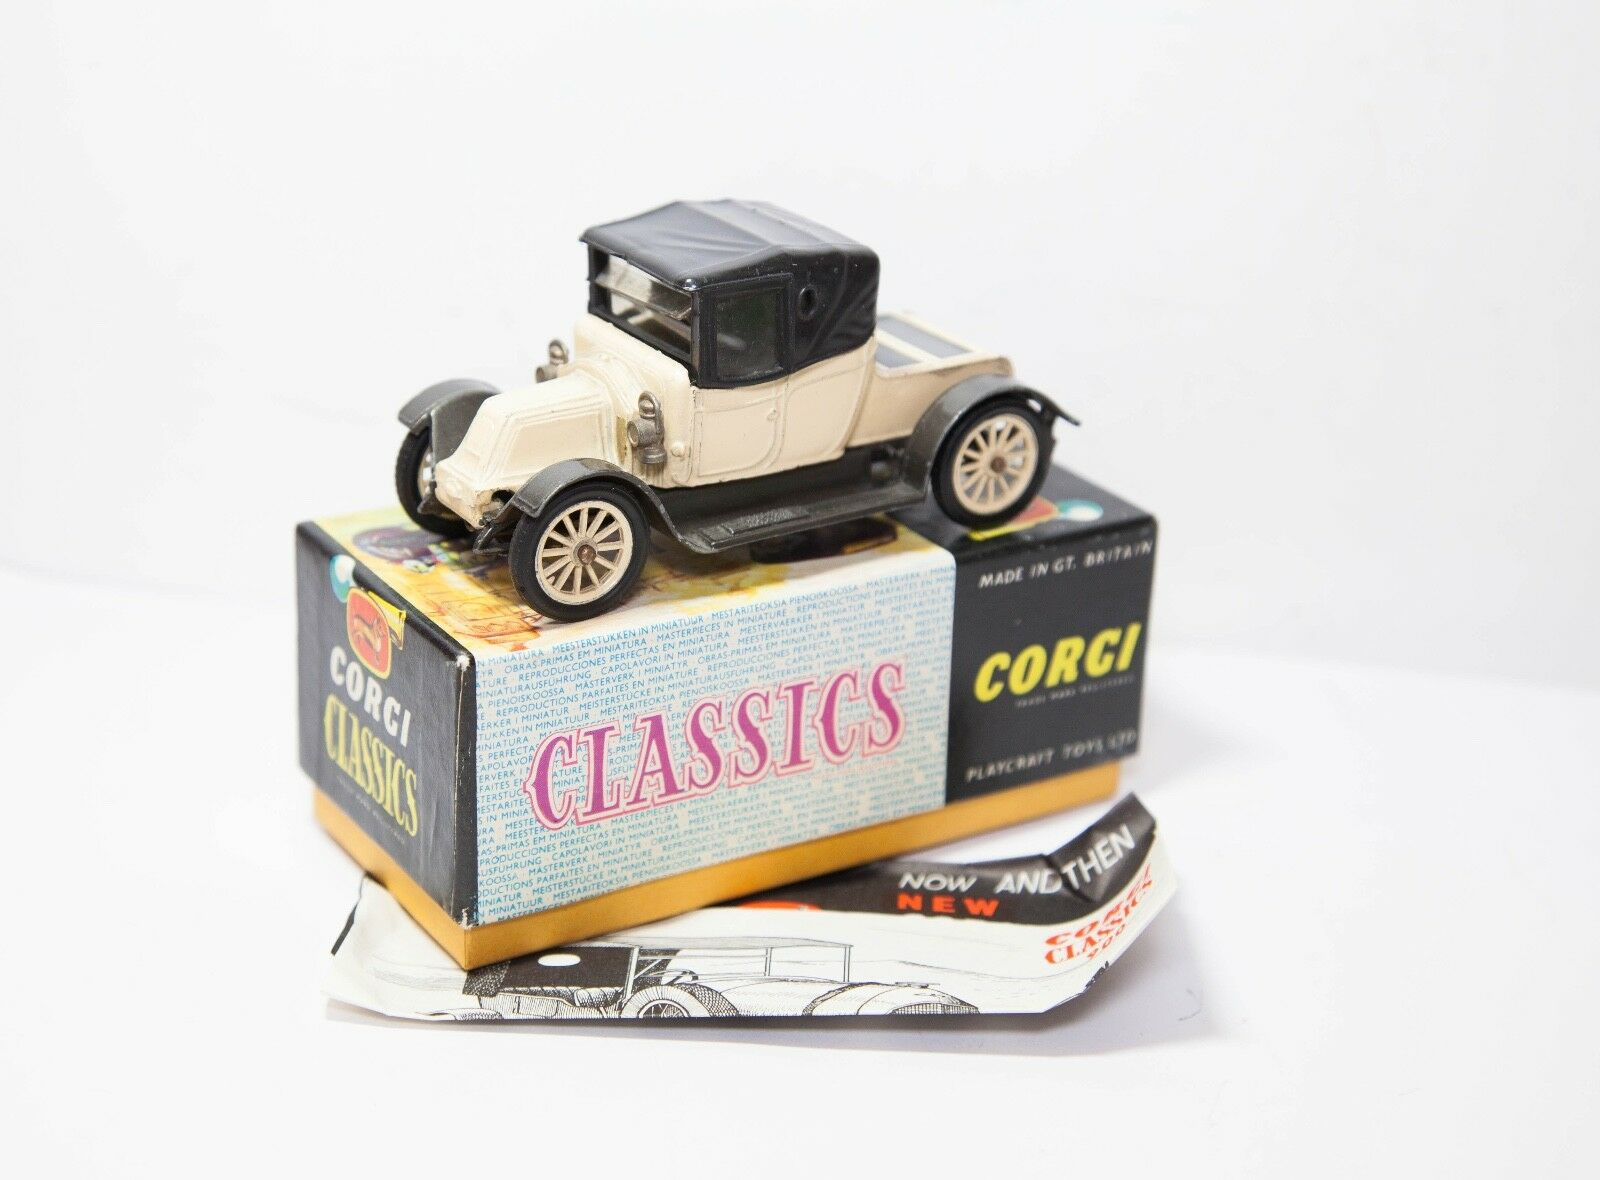 Corgi Classics no. 9032 1910 Renault In Original Box - Excellent Vintage Diecast